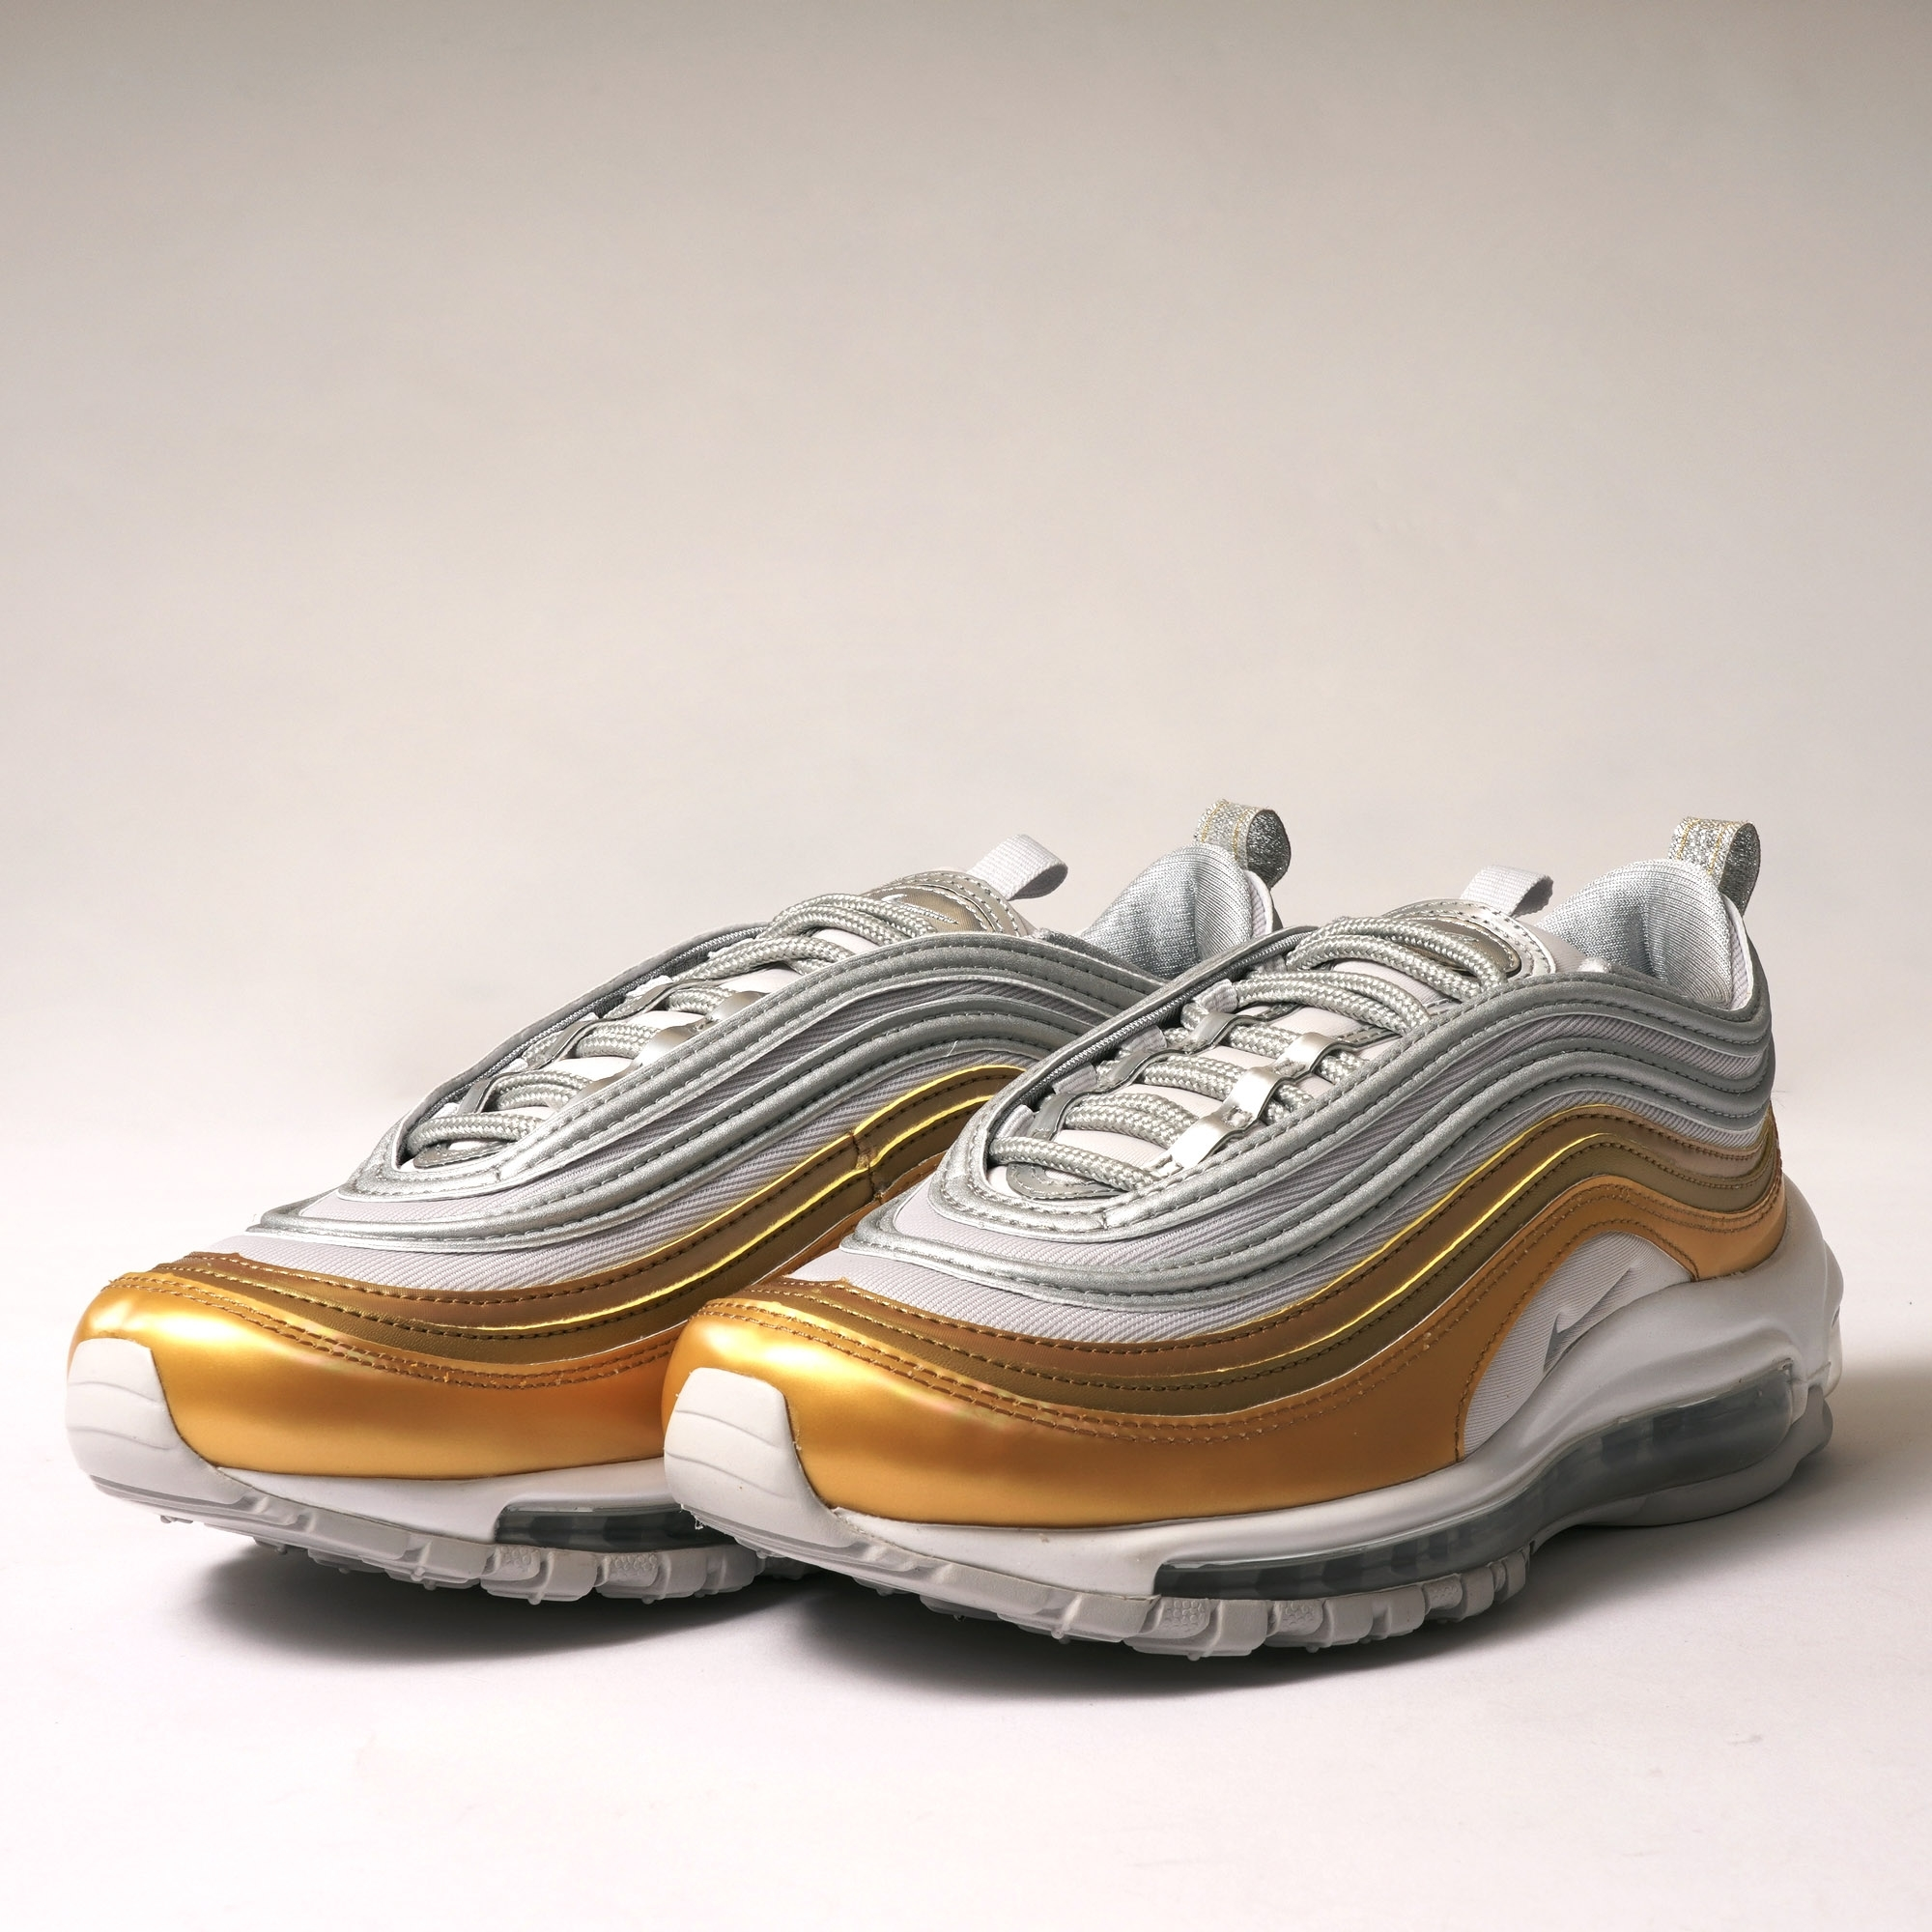 Air Max 97 SE Grey, Silver, Gold & White